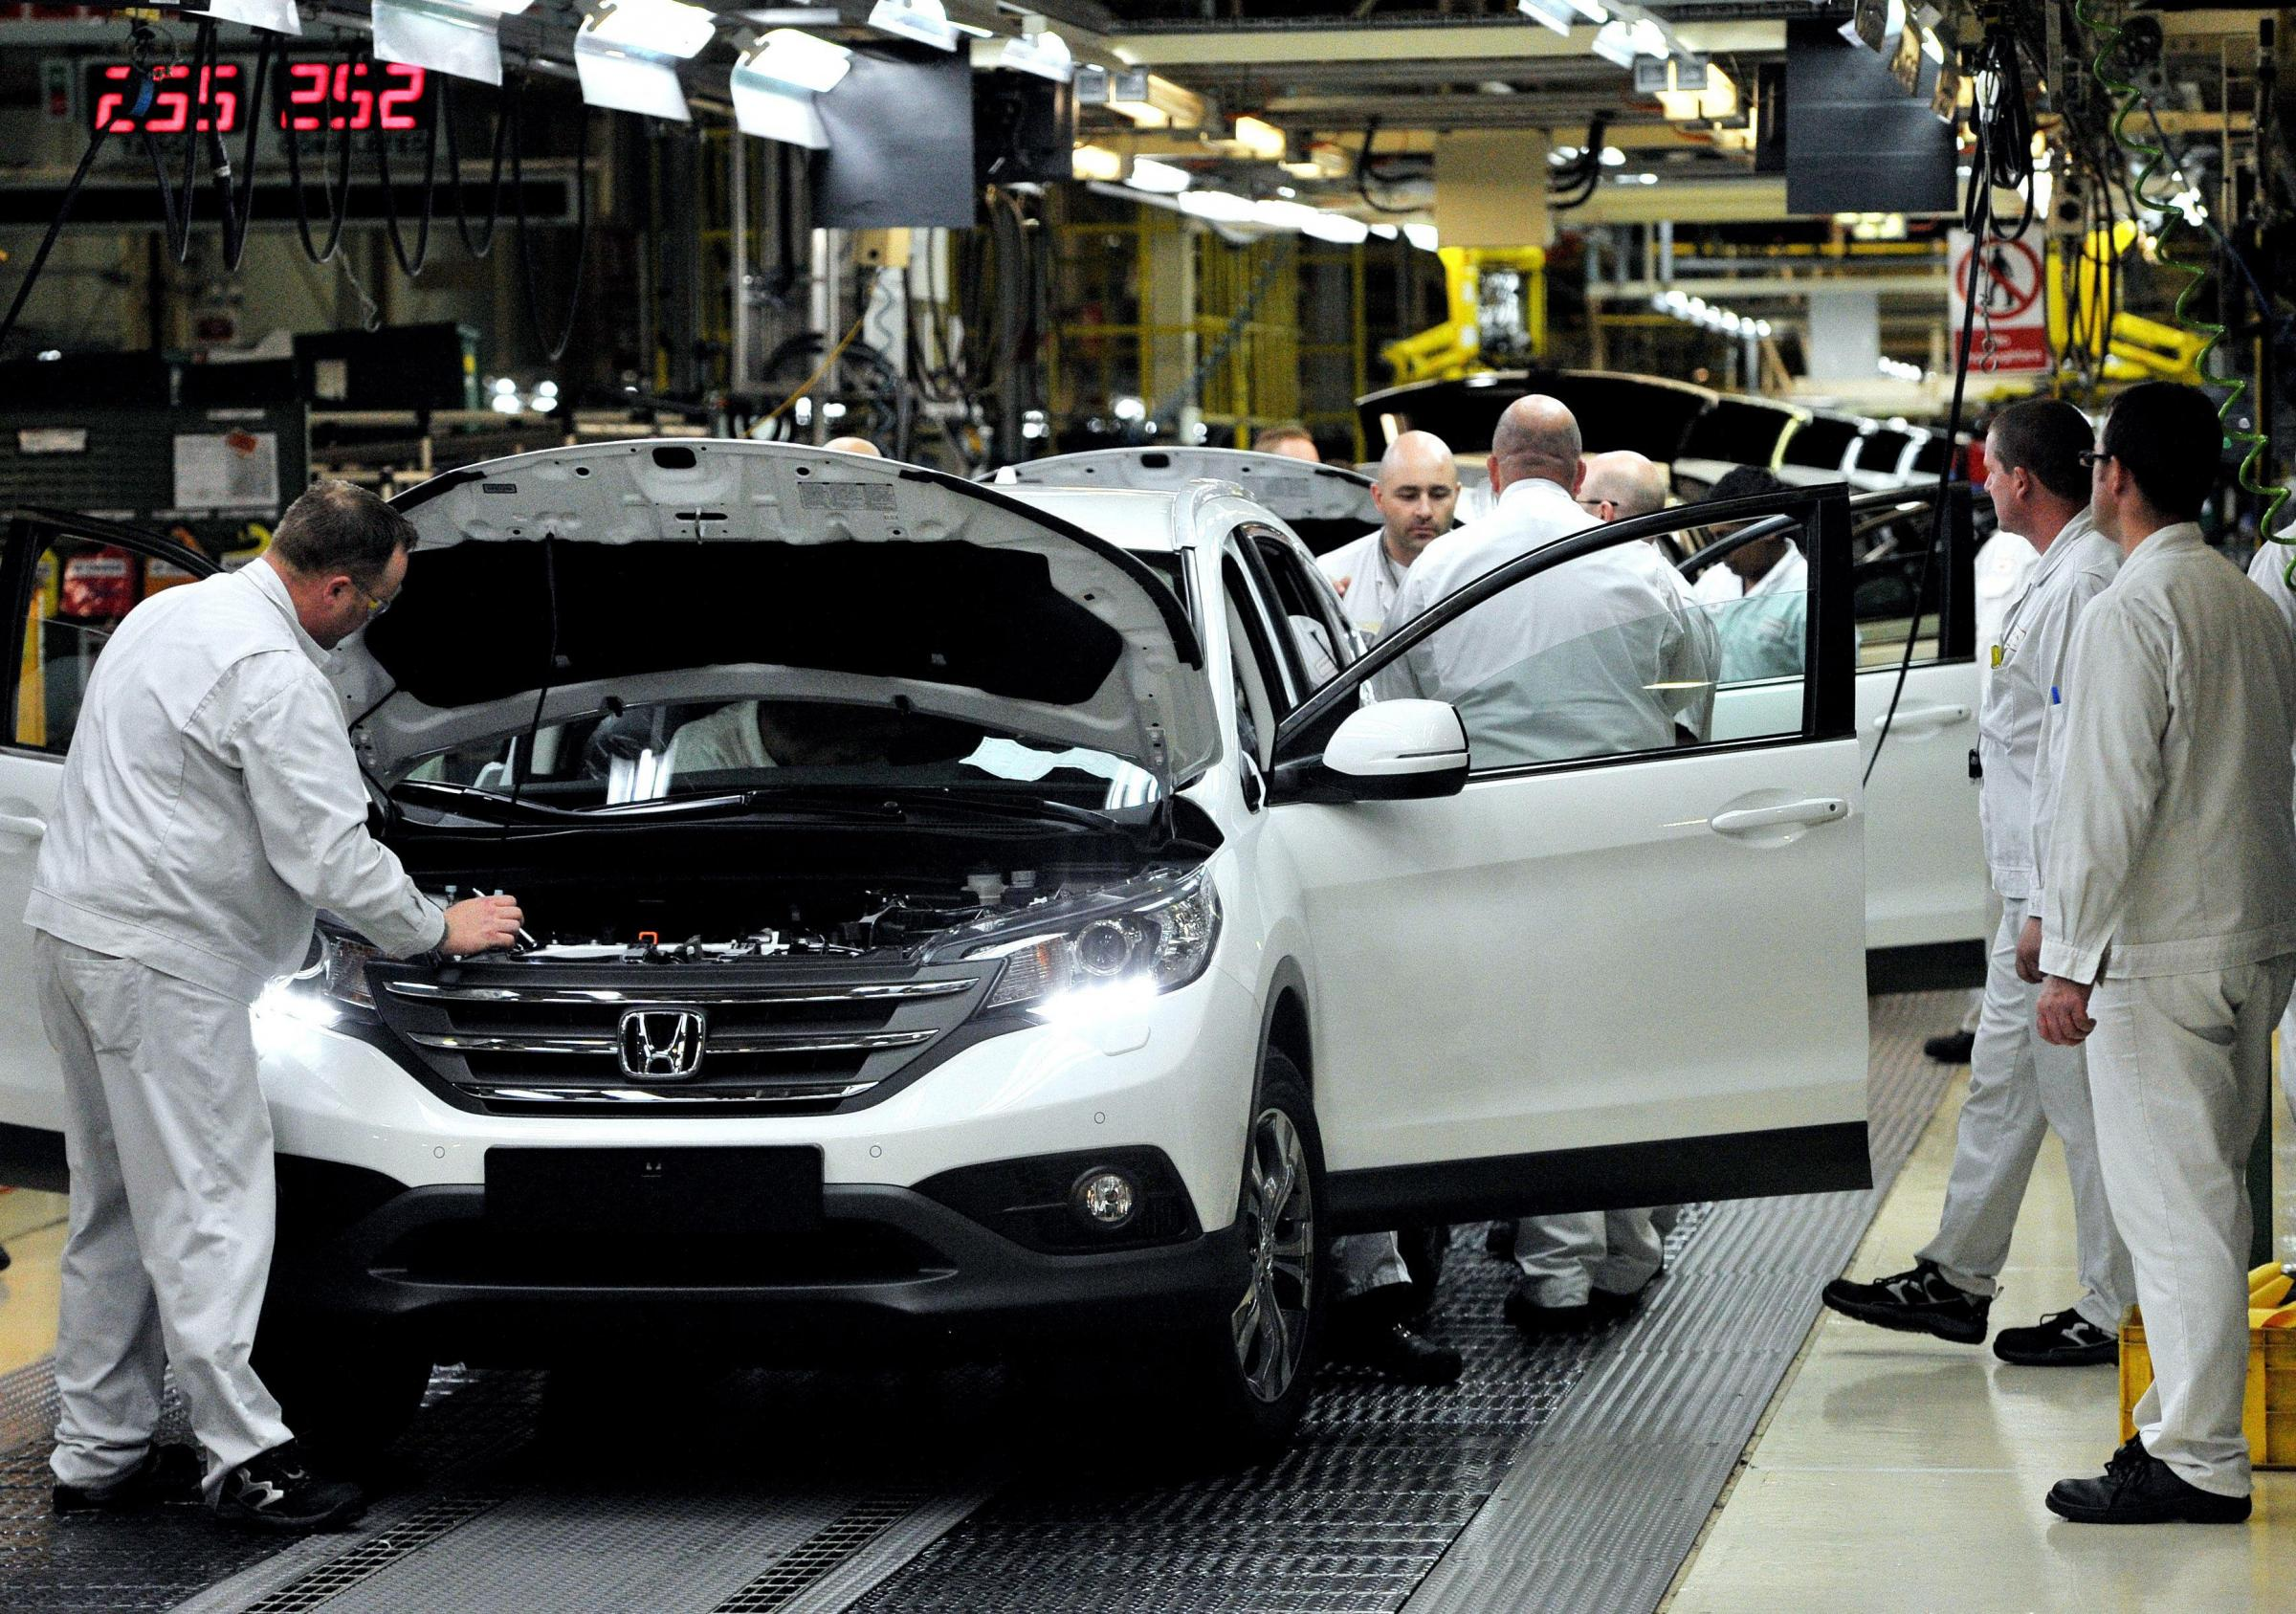 File photo dated 06/09/12 of workers on the Honda CR-V production line at the Honda Plant in Swindon. Honda is to cut 800 jobs at the plant after a slump in demand accross Europe..